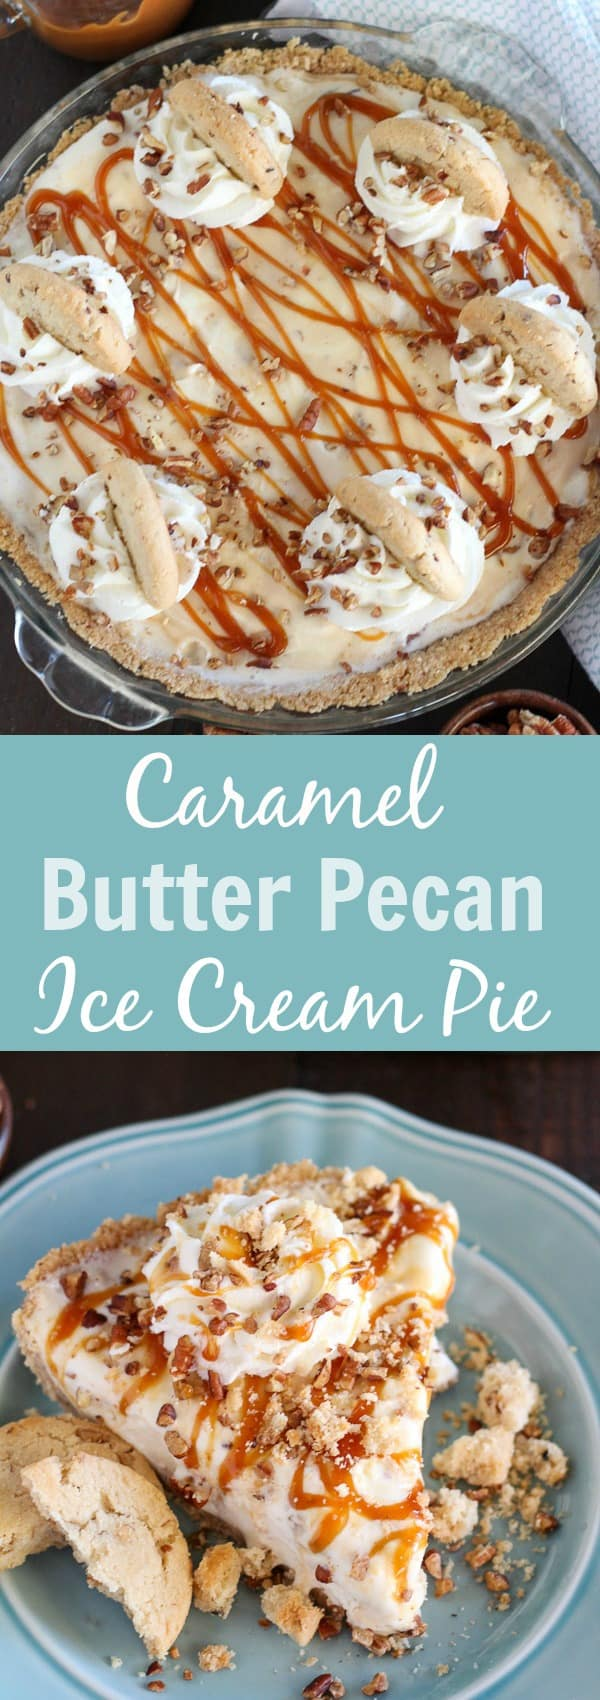 Caramel Butter Pecan Ice Cream Pie - A crushed pecan shortbread cookie crust filled with butter pecan ice cream, and topped with caramel sauce, whipped cream, chopped pecans and pecan shortbread cookies.